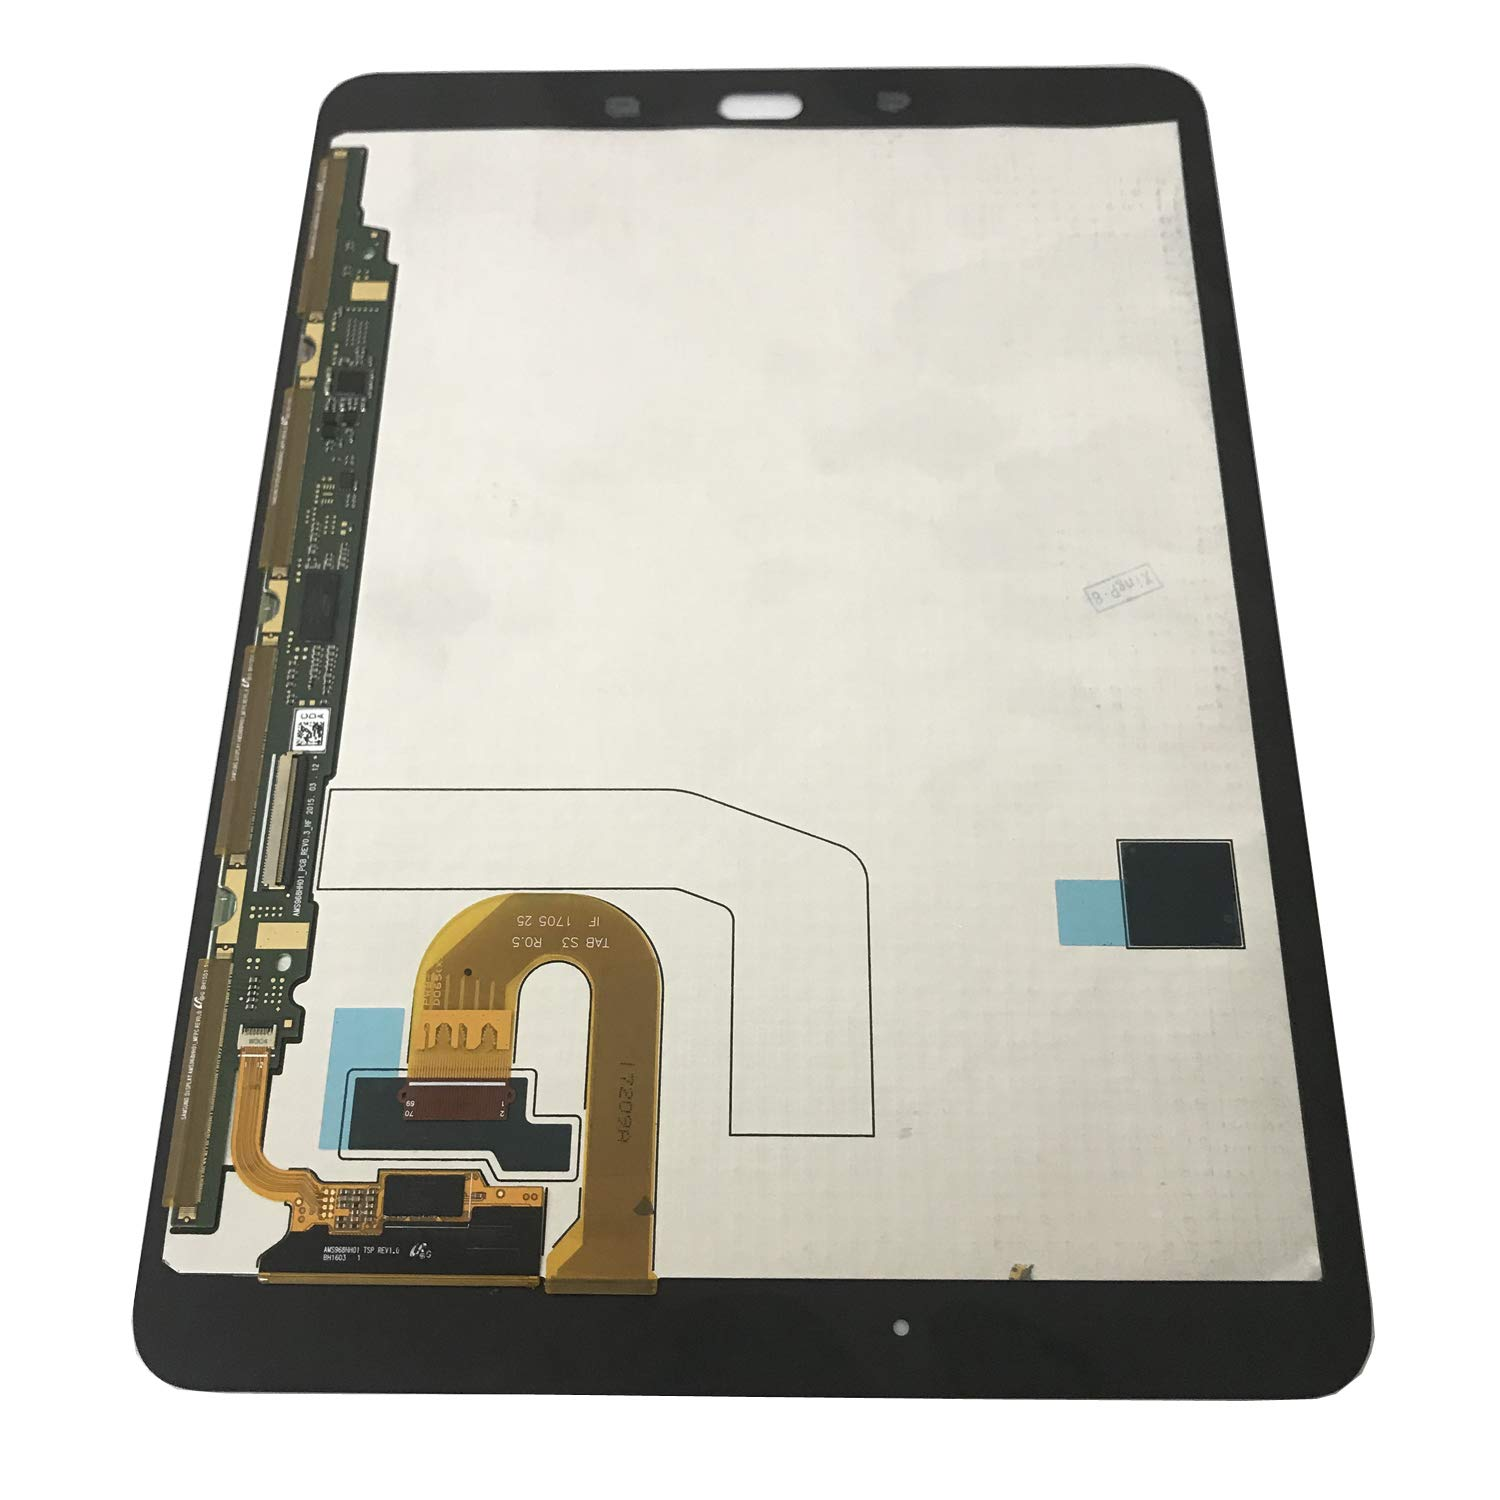 LCD Screen Touch Digitizer Panel for Samsung Galaxy Tab S3 SM-T820,SM-T825 SM-T827 by Ycheda (Image #2)